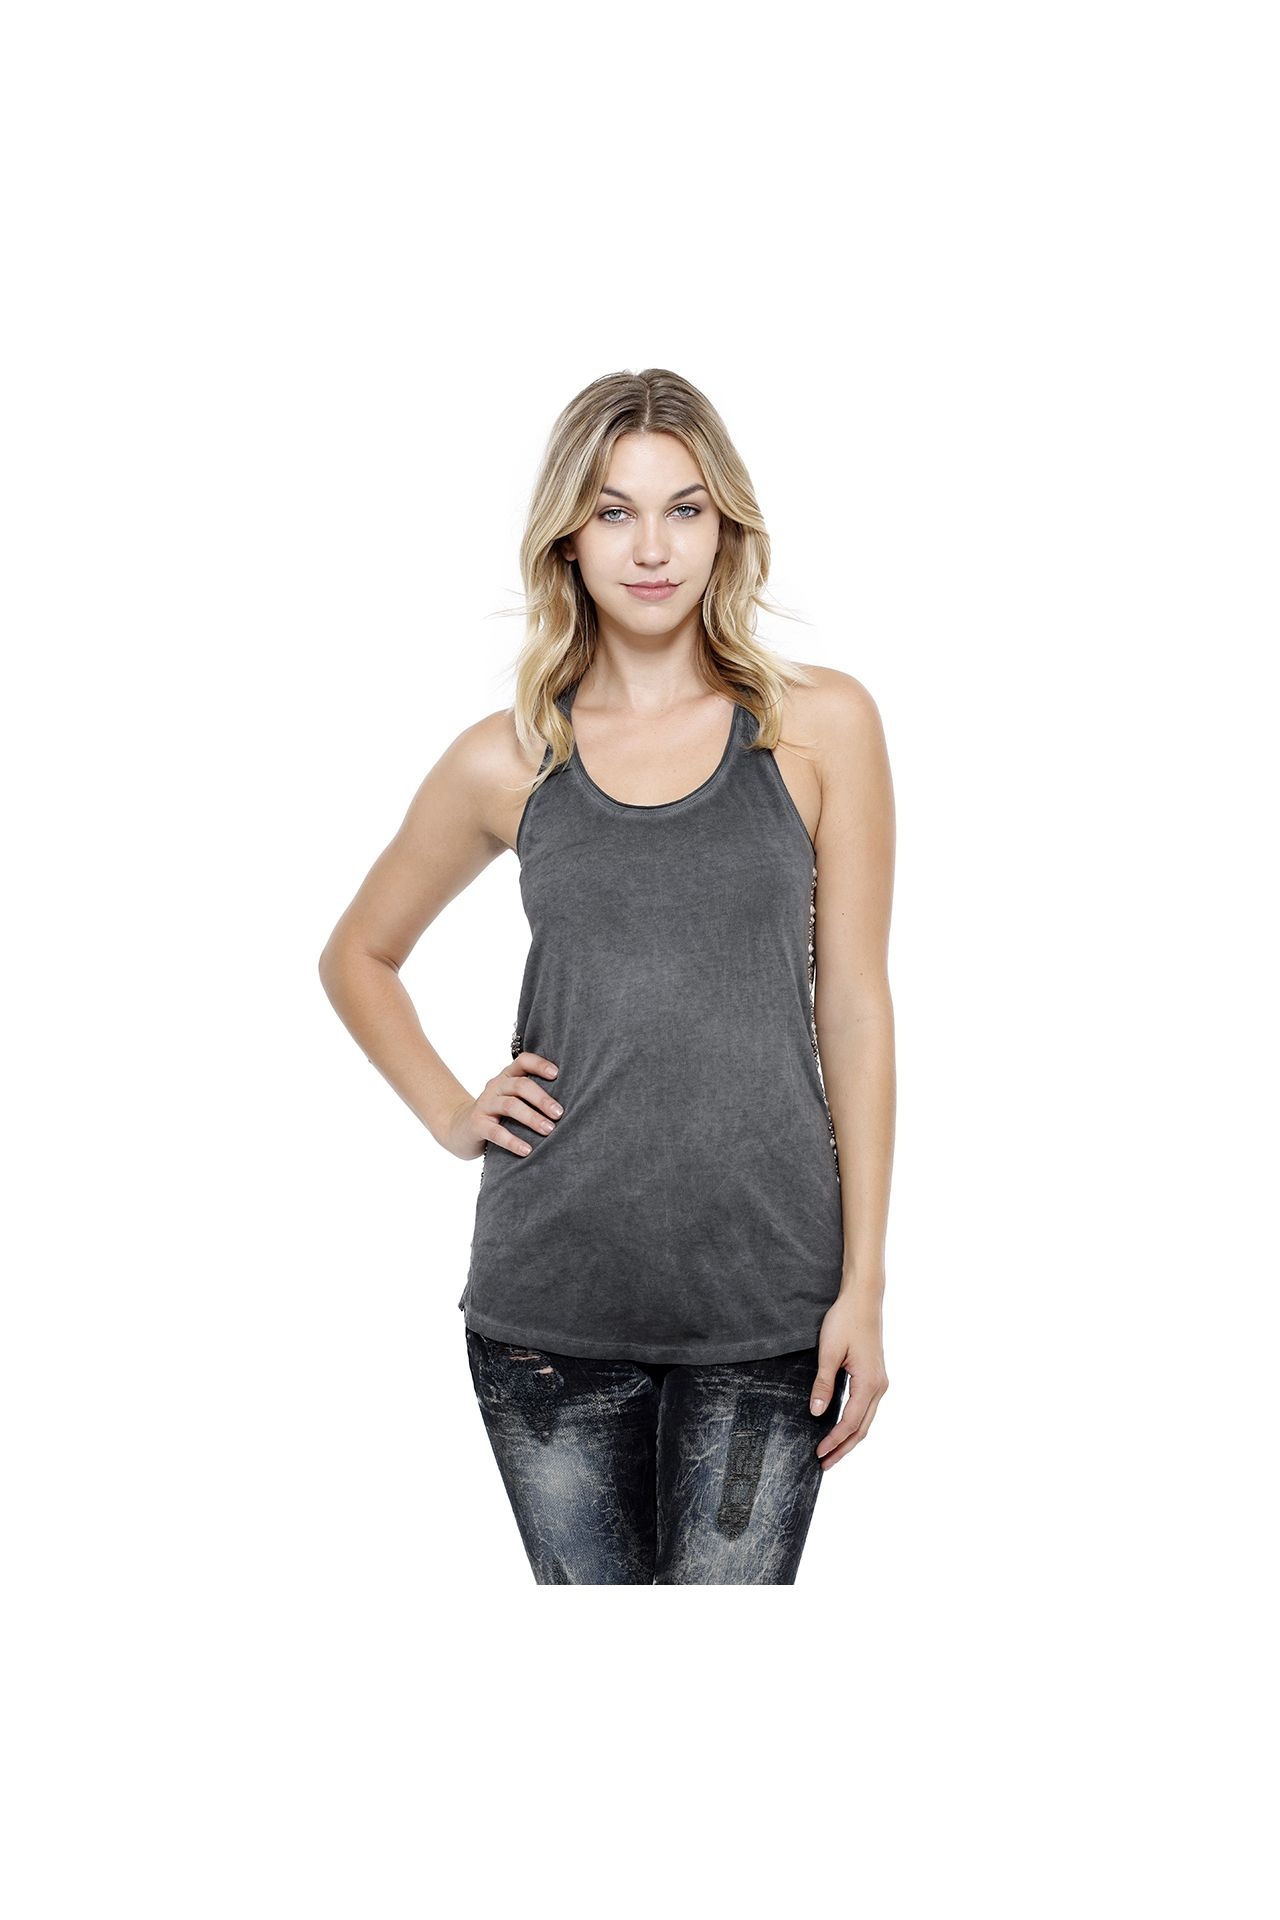 STUDDED TANK IN CHARCOAL